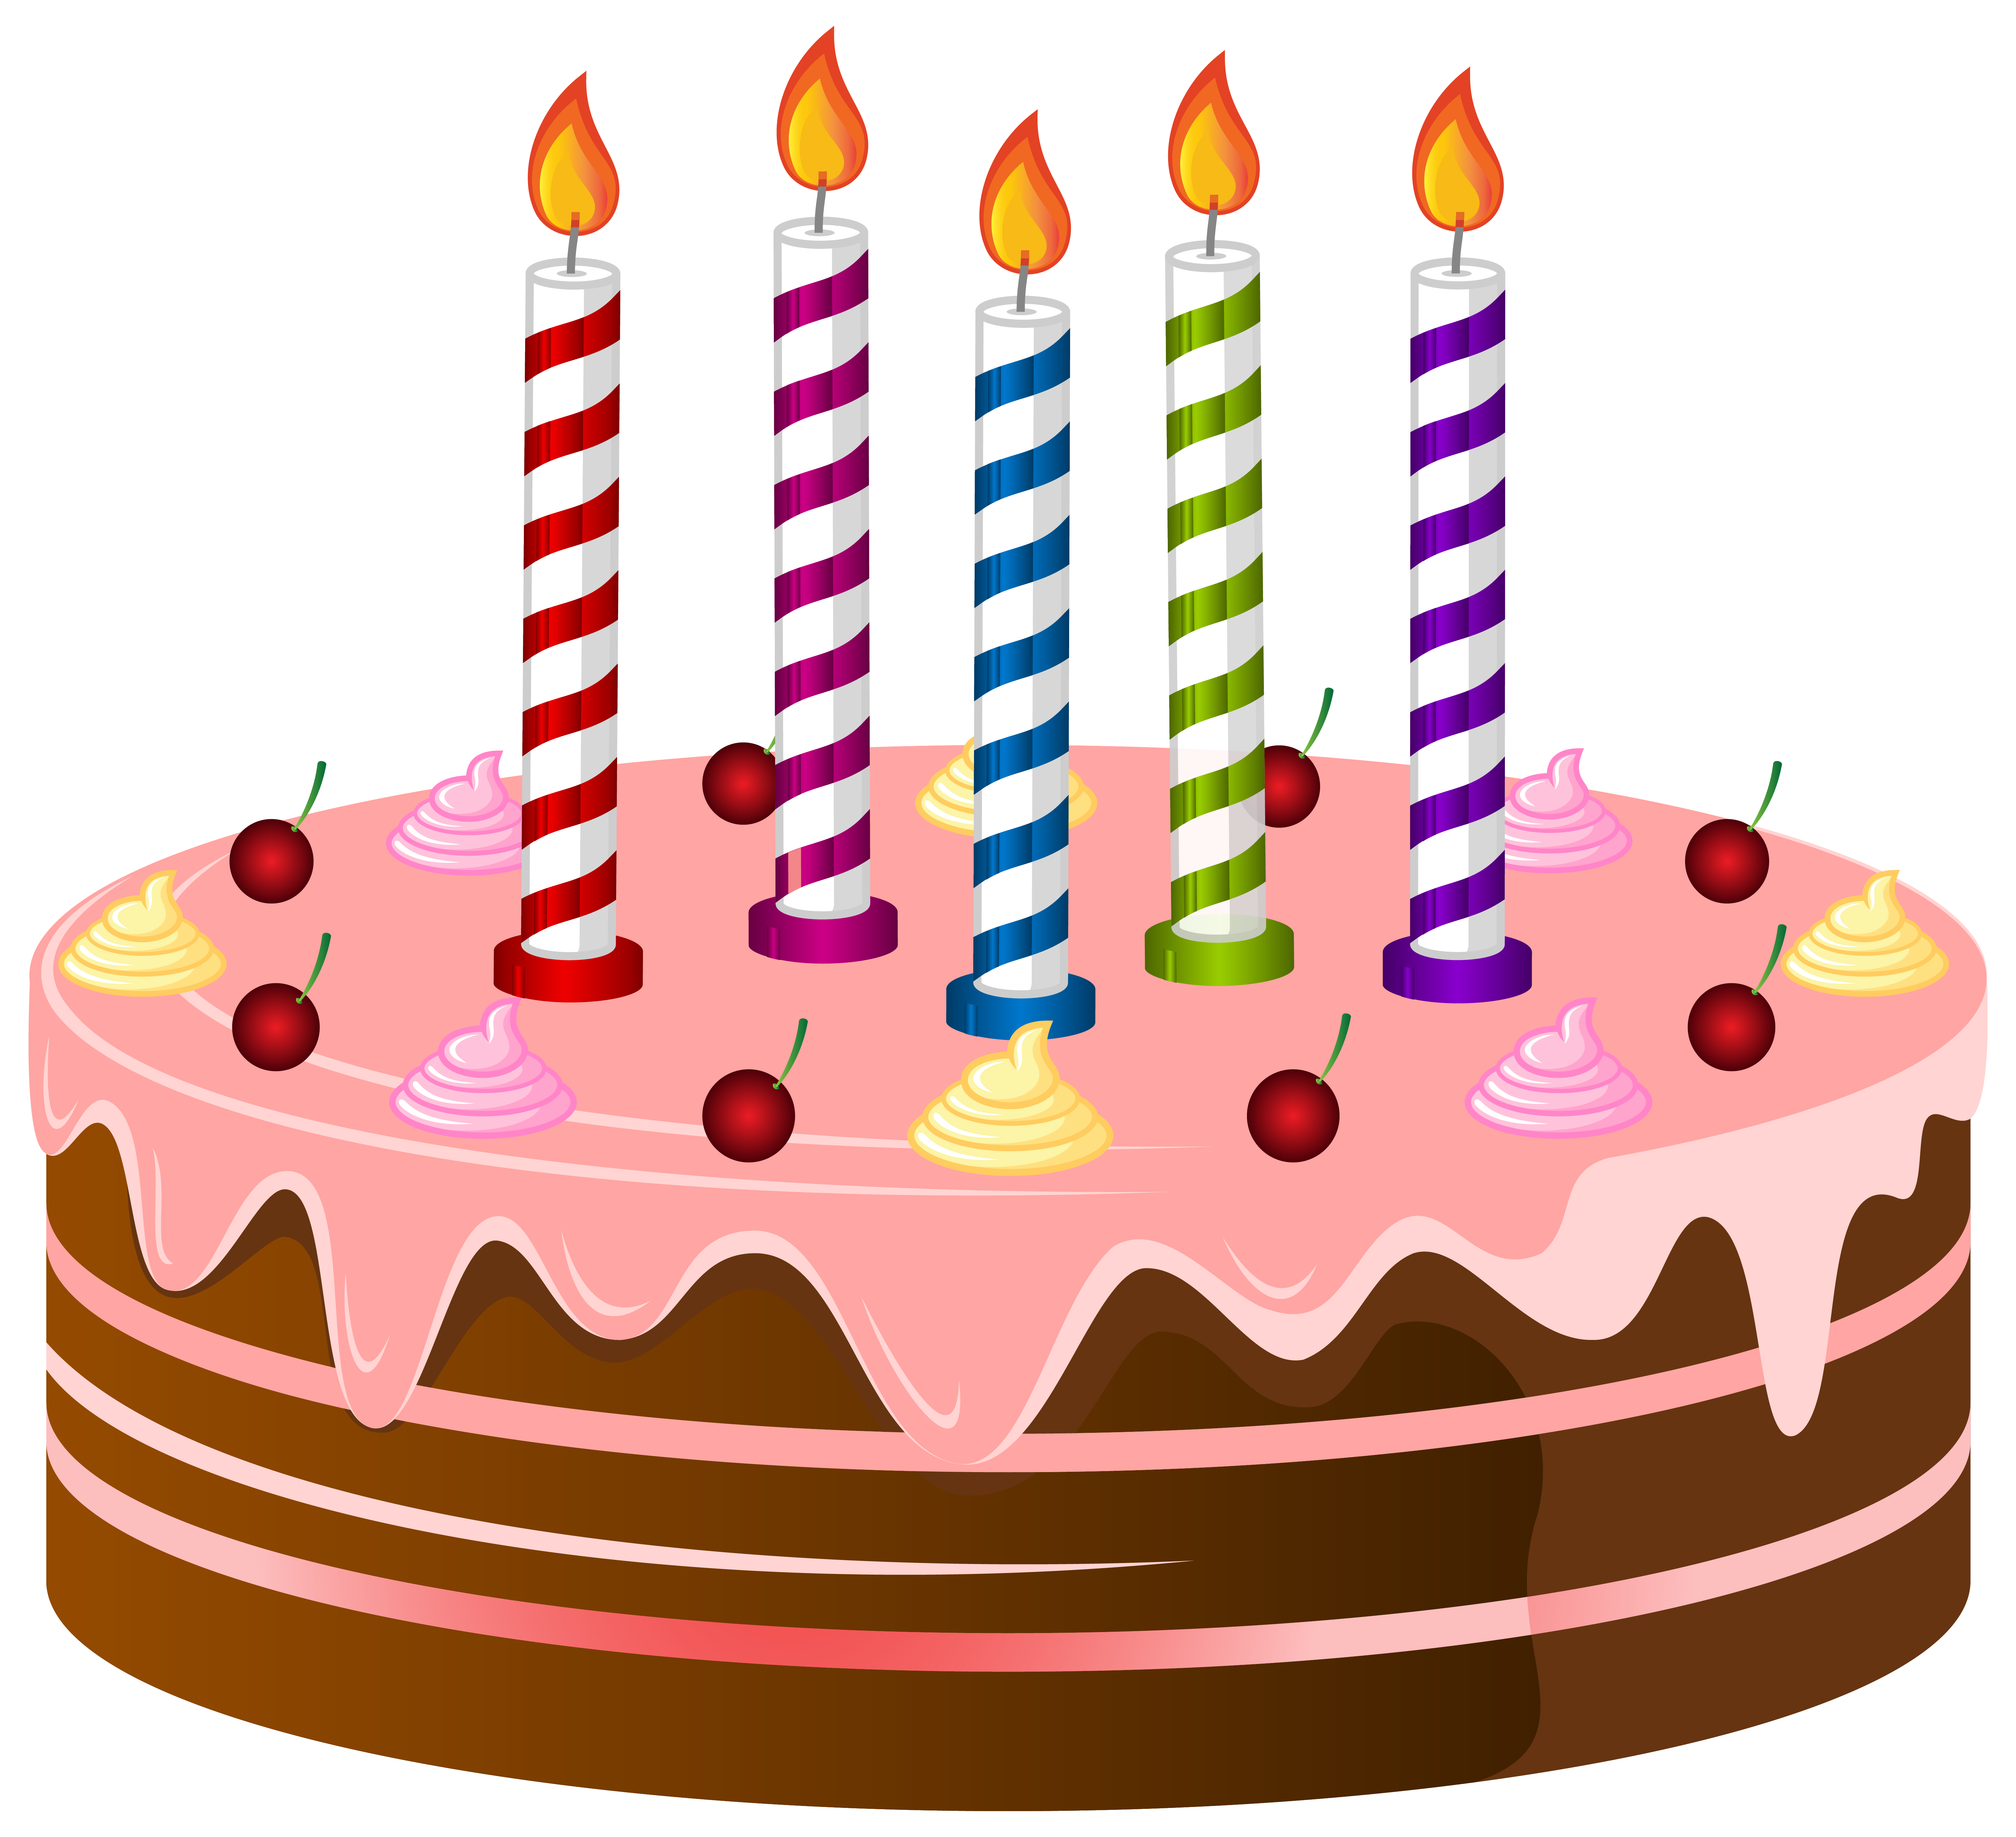 birthday cake with candles png